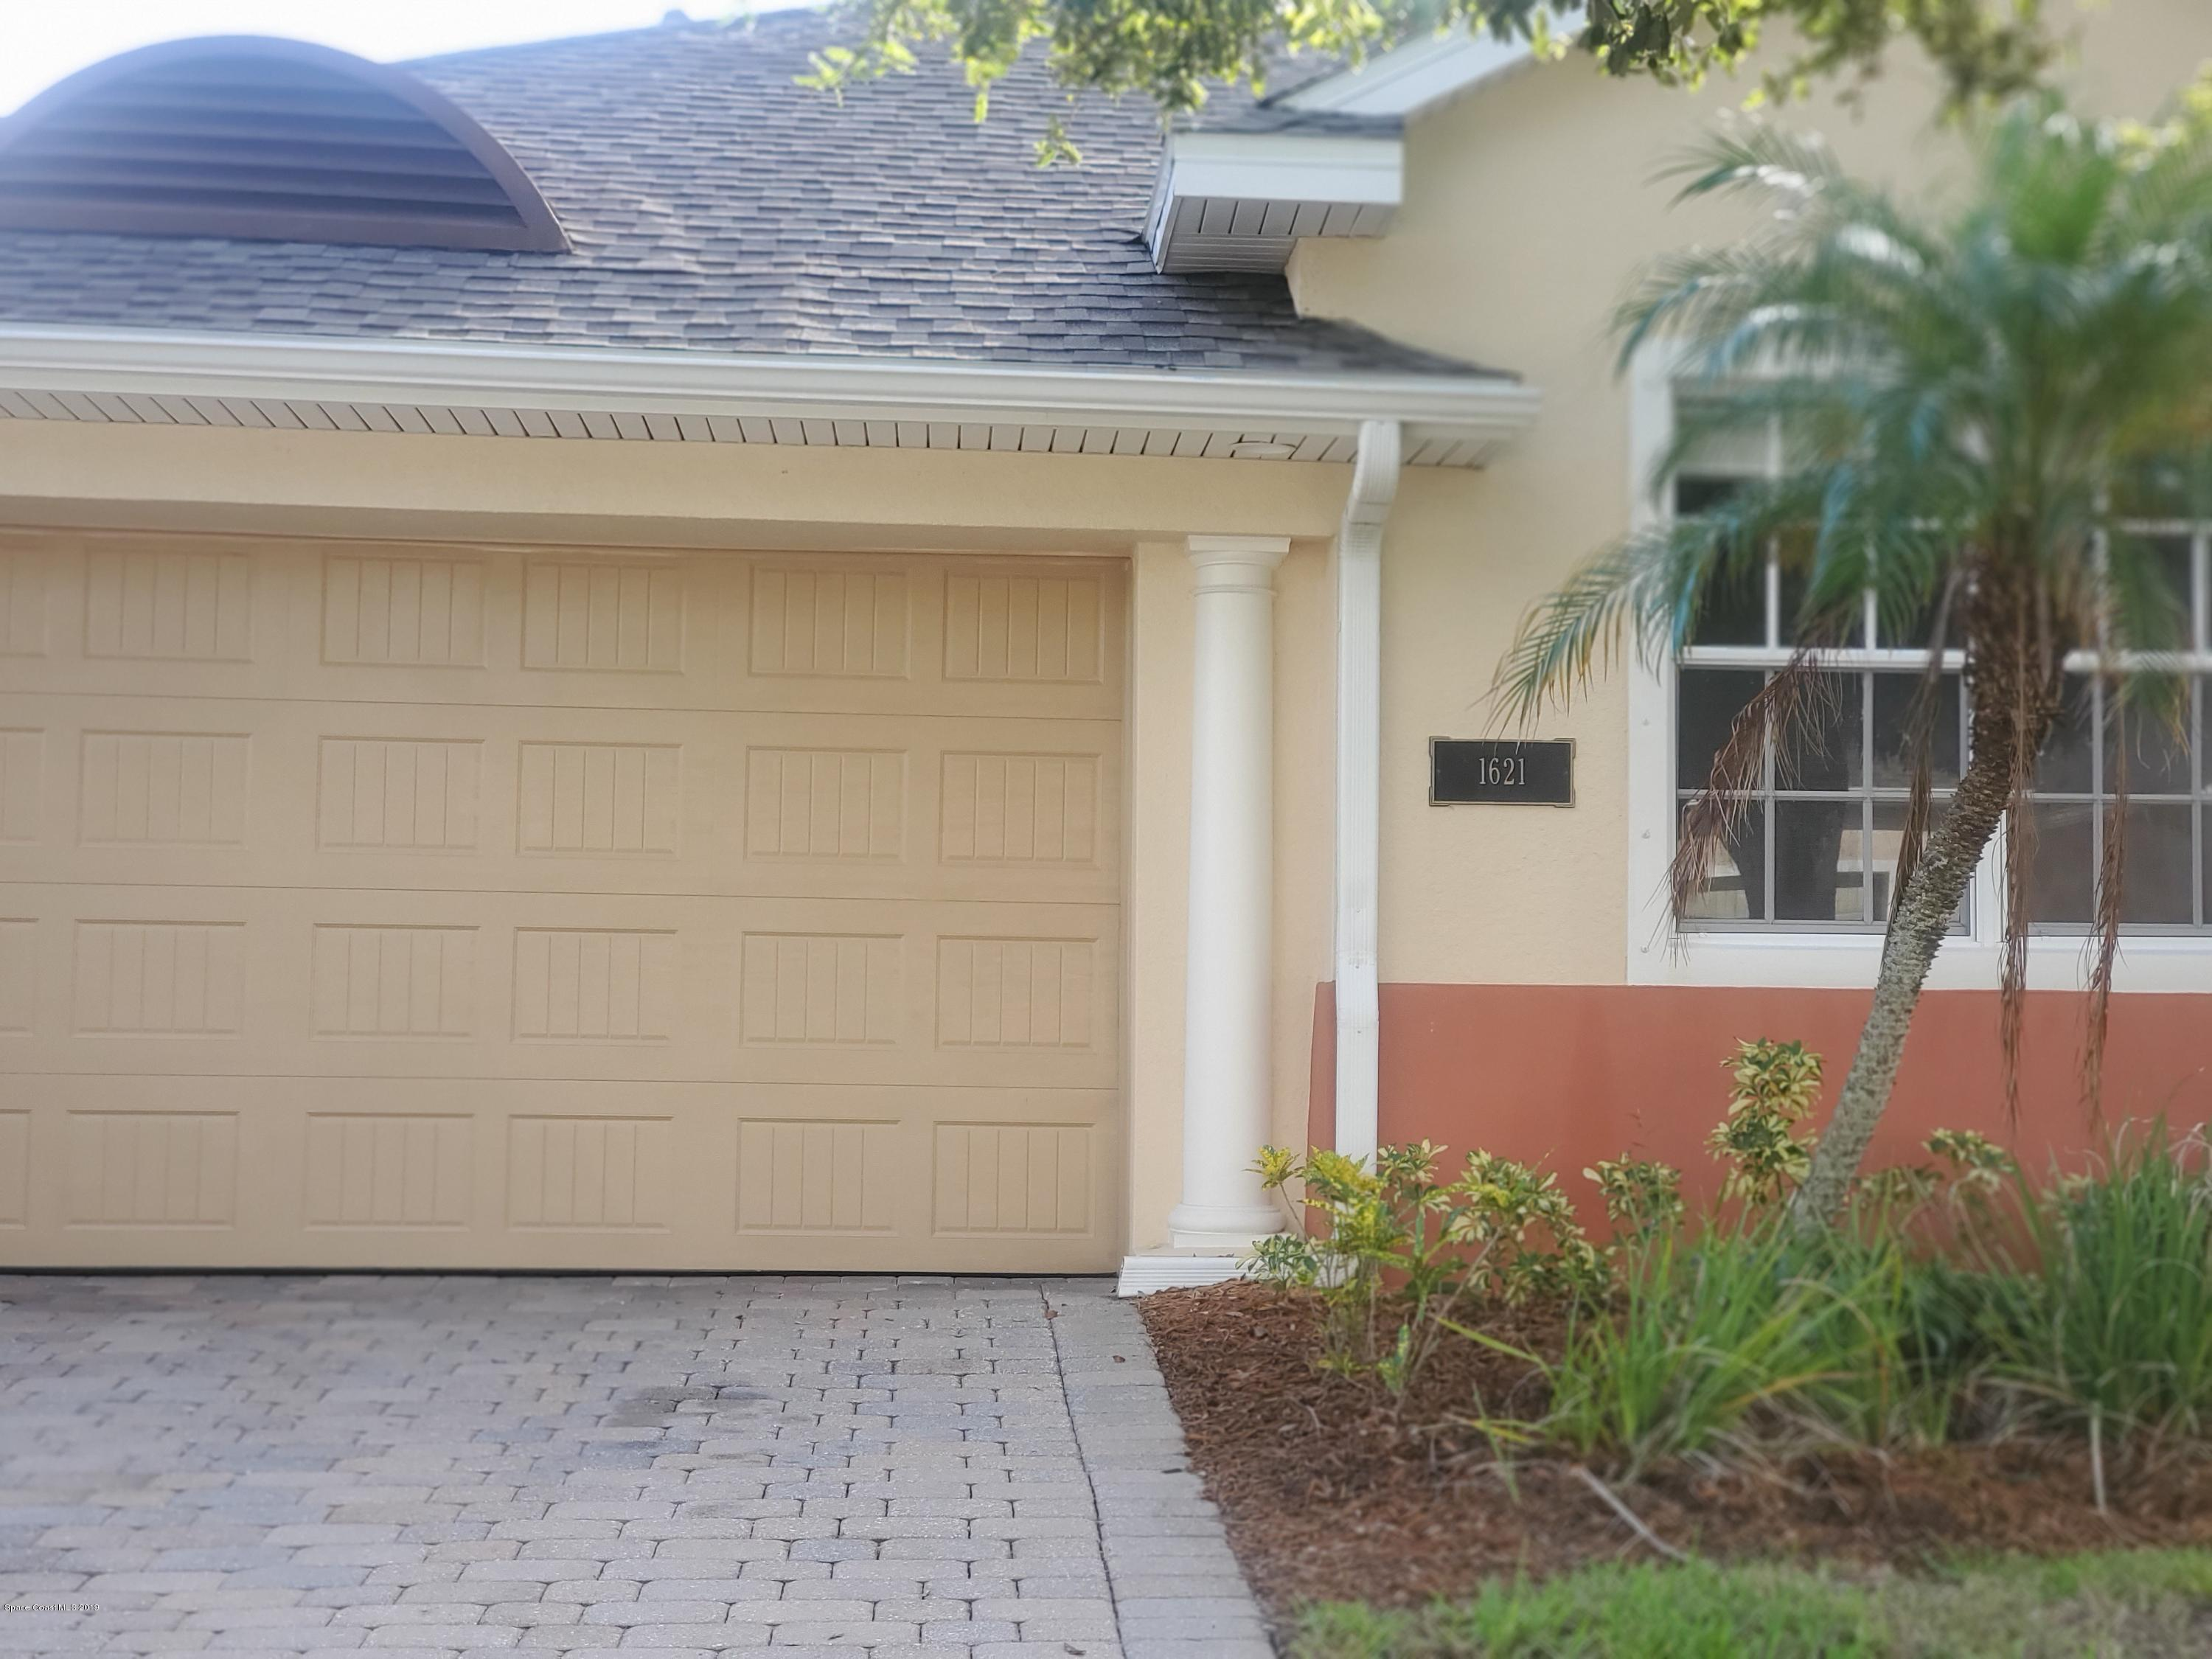 Single Family Homes for Sale at 1621 Kinsale Melbourne, Florida 32940 United States